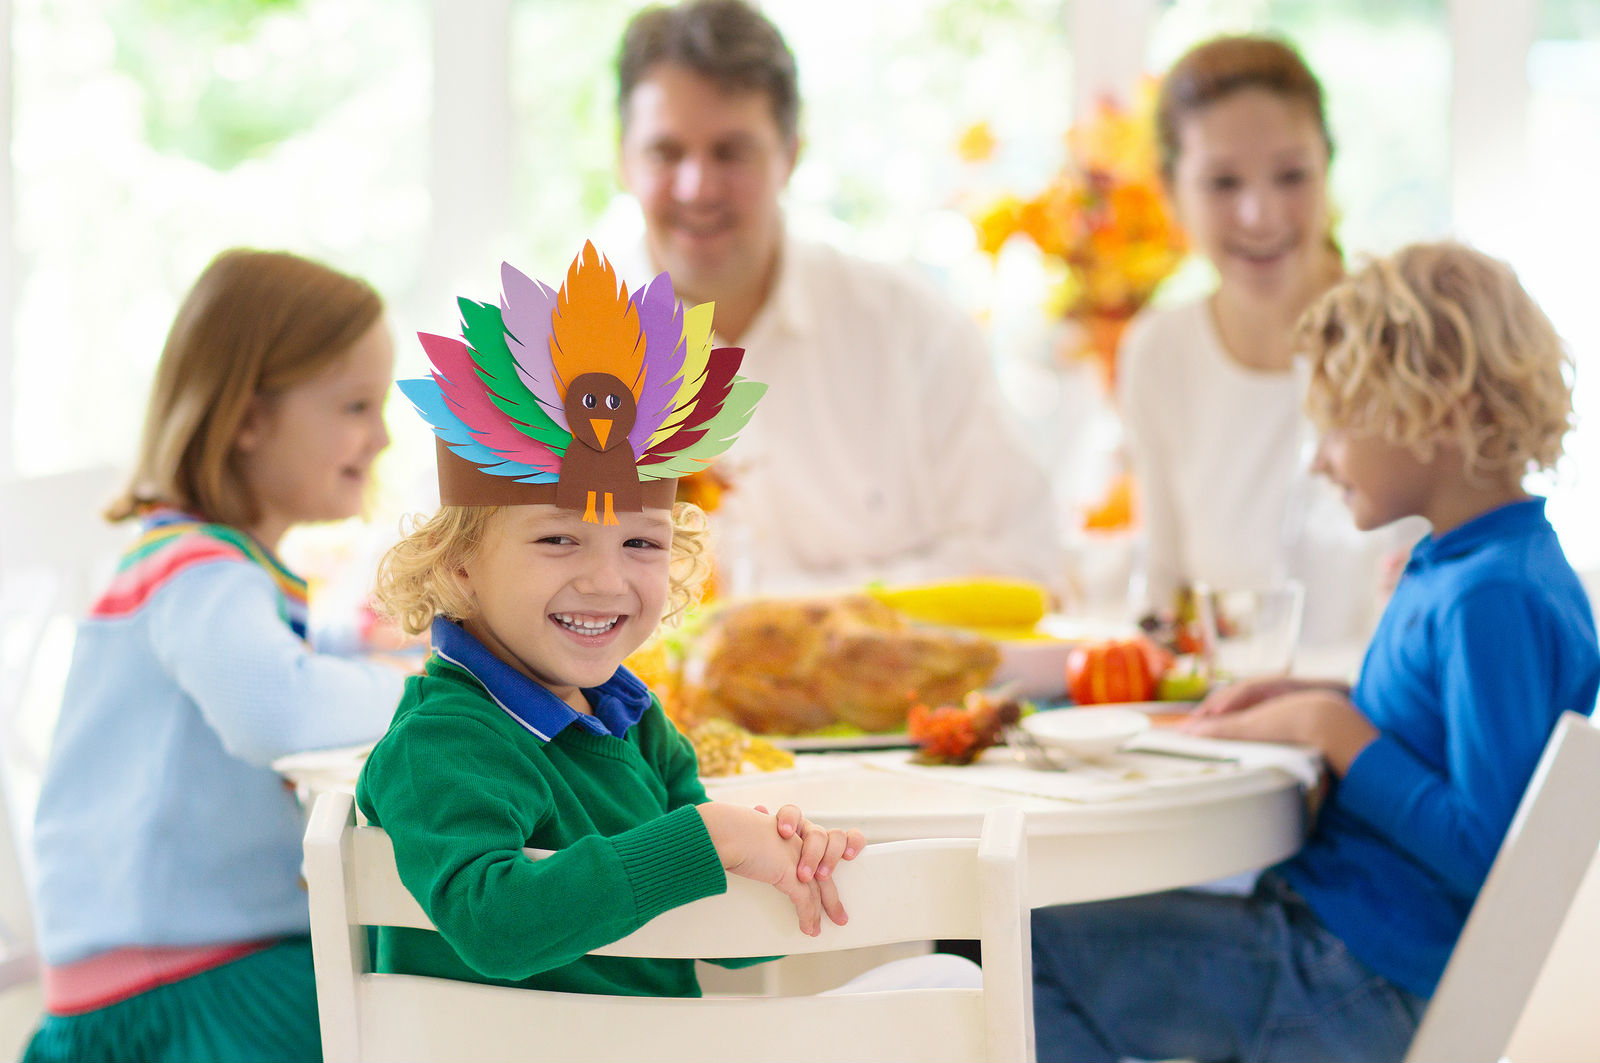 3 Ways to Keep the Kids Entertained During Dinner This Thanksgiving